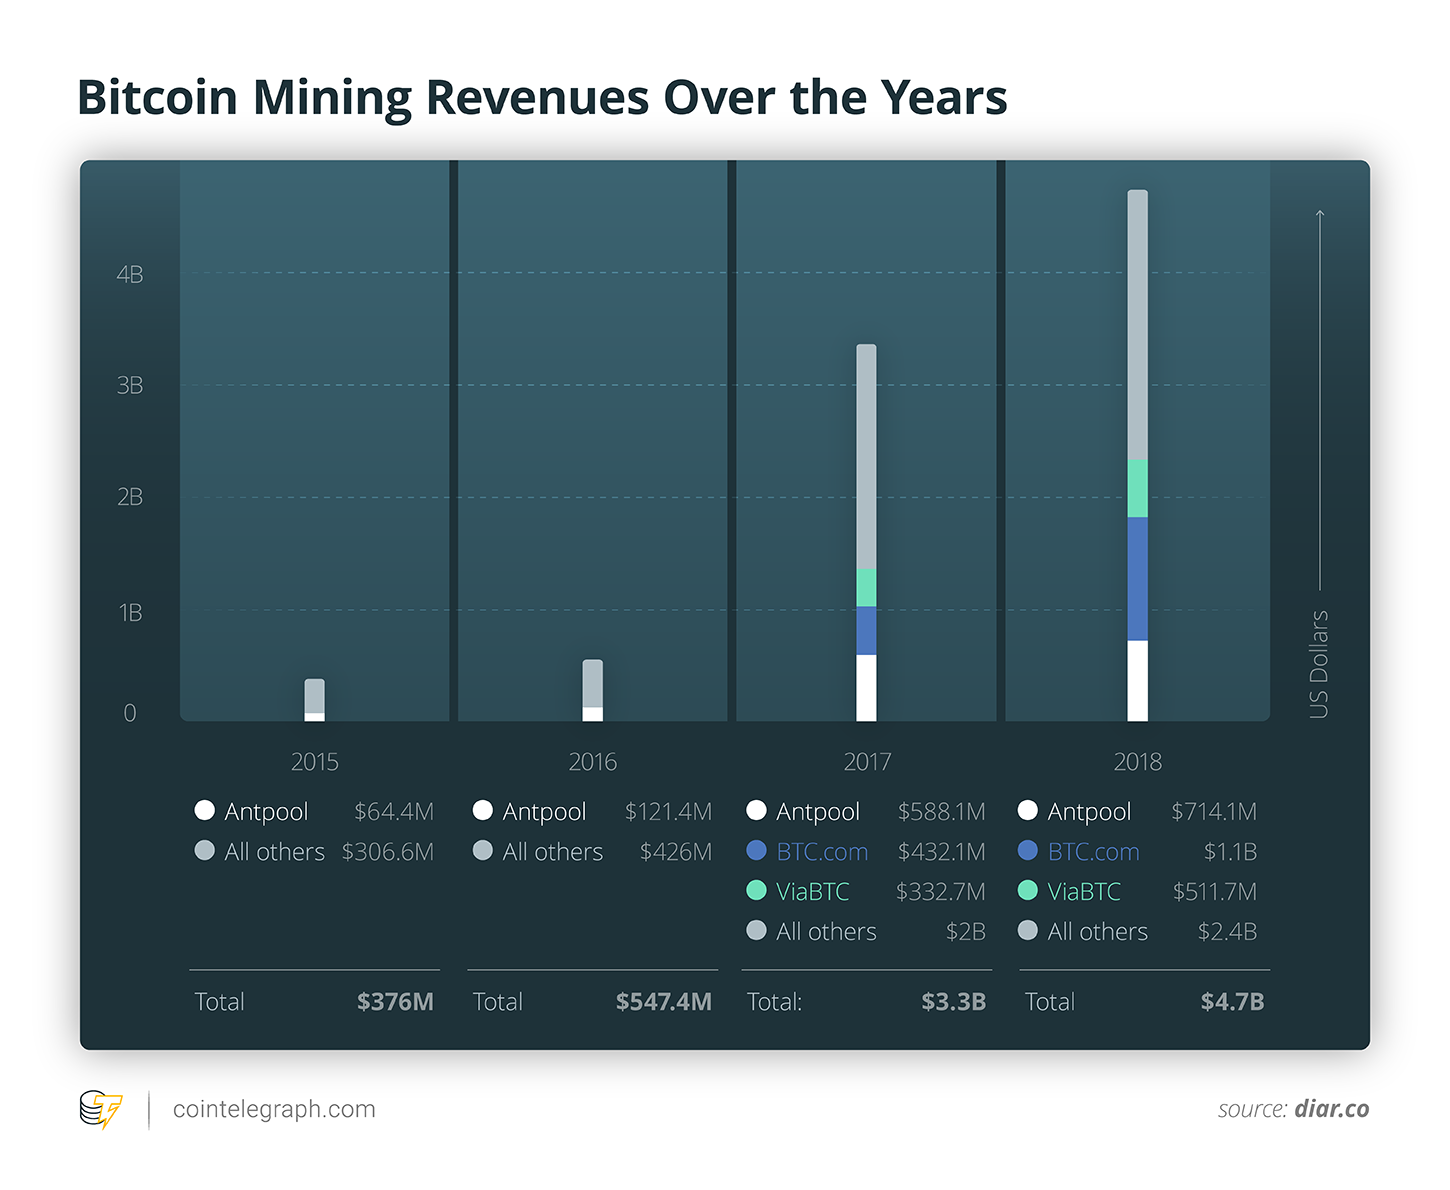 Bitcoin Mining Revenues Over the Years